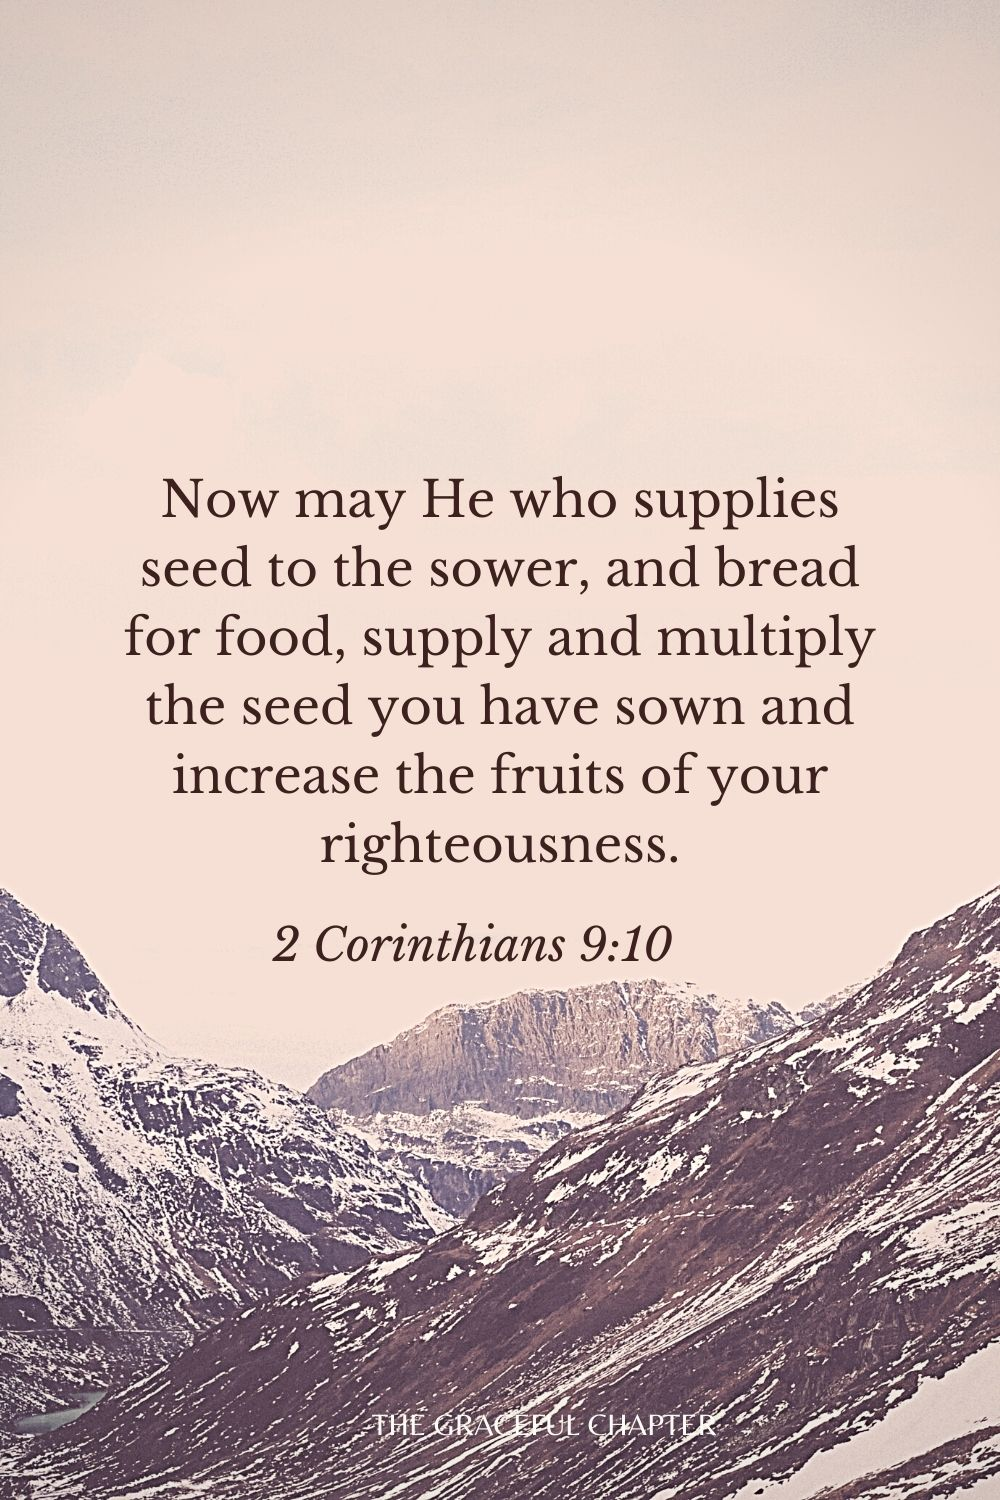 Now may He who supplies seed to the sower, and bread for food, supply and multiply the seed you have sown and increase the fruits of your righteousness. 2 Corinthians 9:10